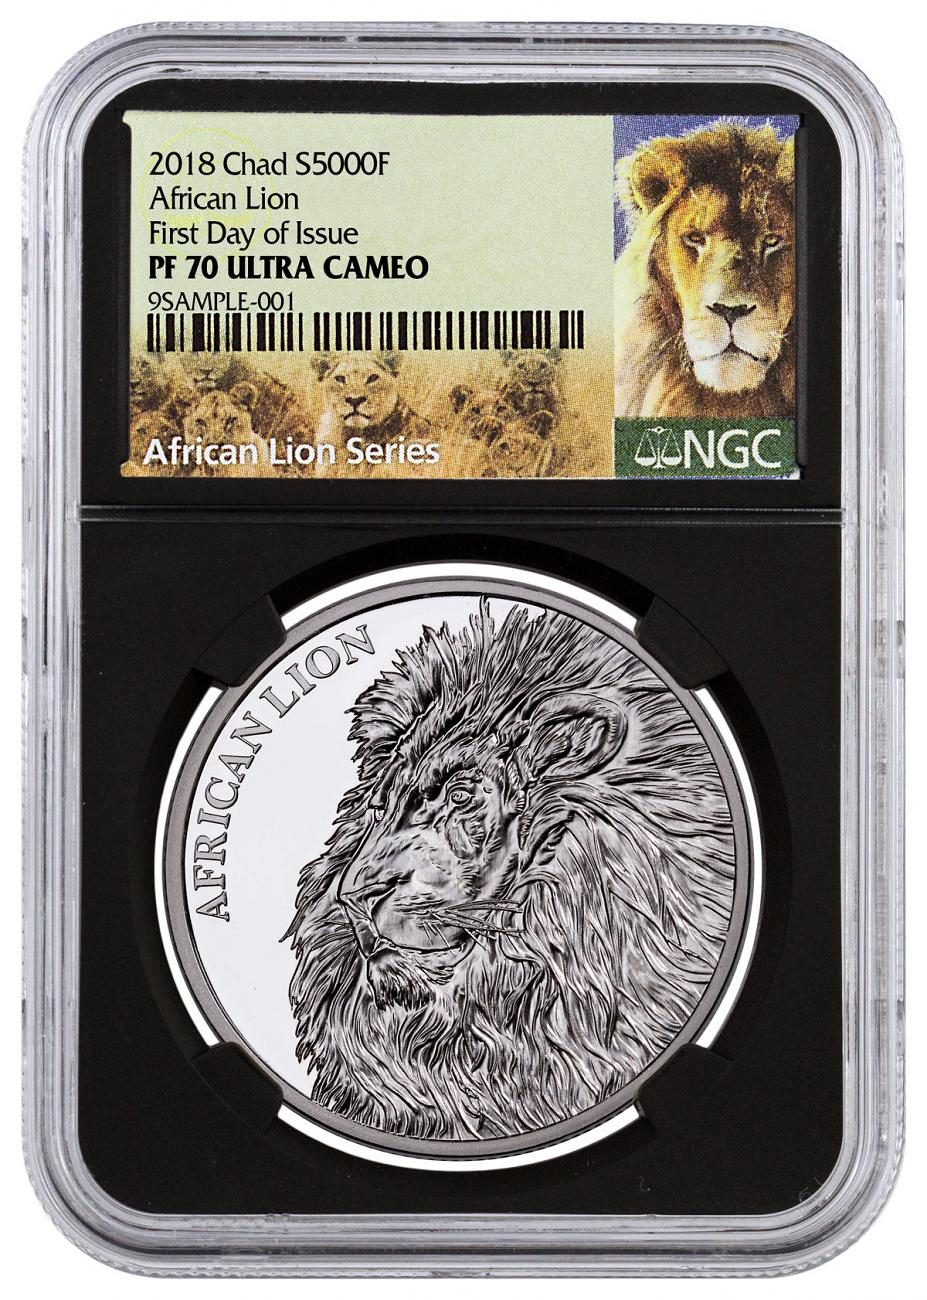 2018 Republic of Chad African Lion 1 oz Silver Proof Fr5,000 Coin NGC PF70 UC FDI Black Core Holder Exclusive Lion Label